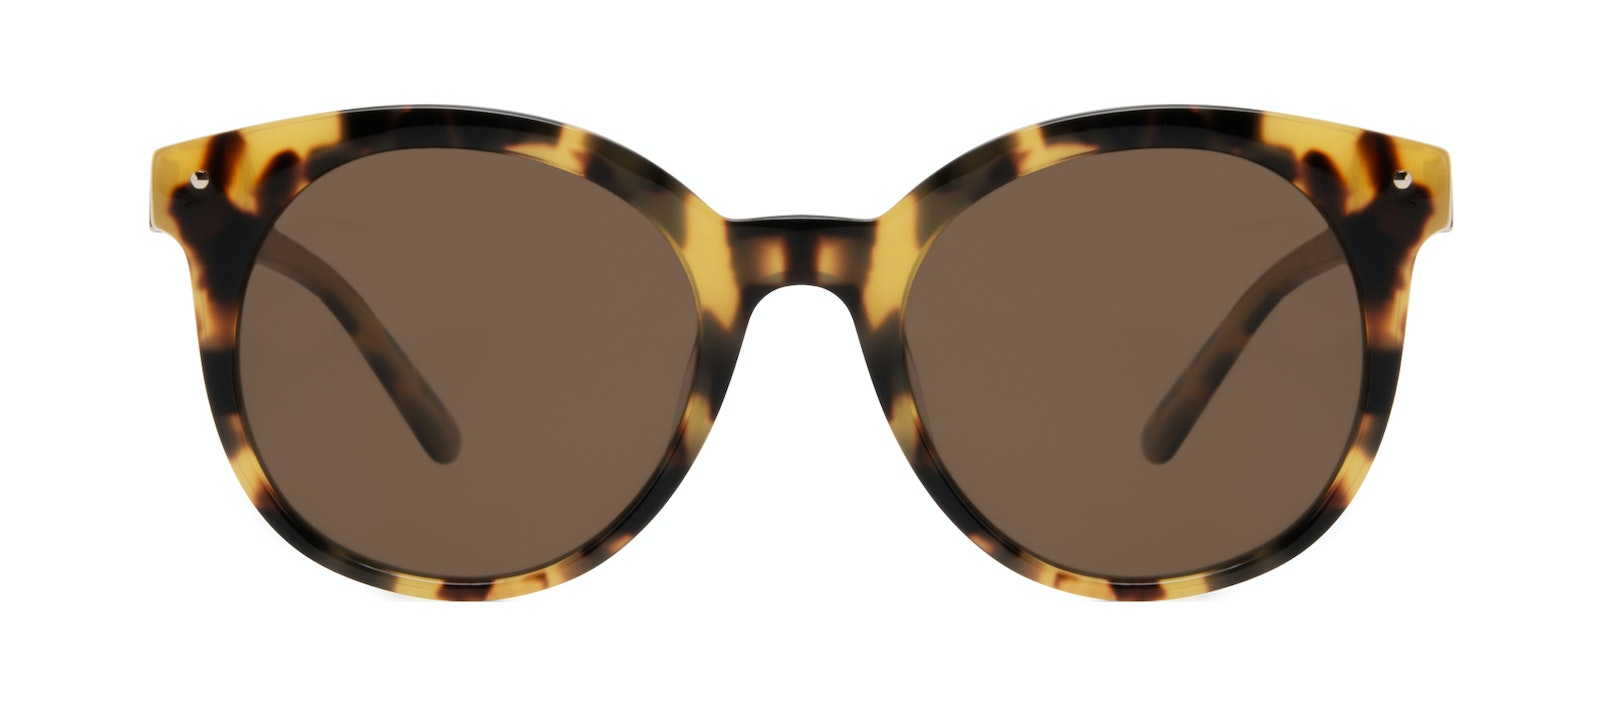 Affordable Fashion Glasses Round Sunglasses Women Hip Tortoise Front